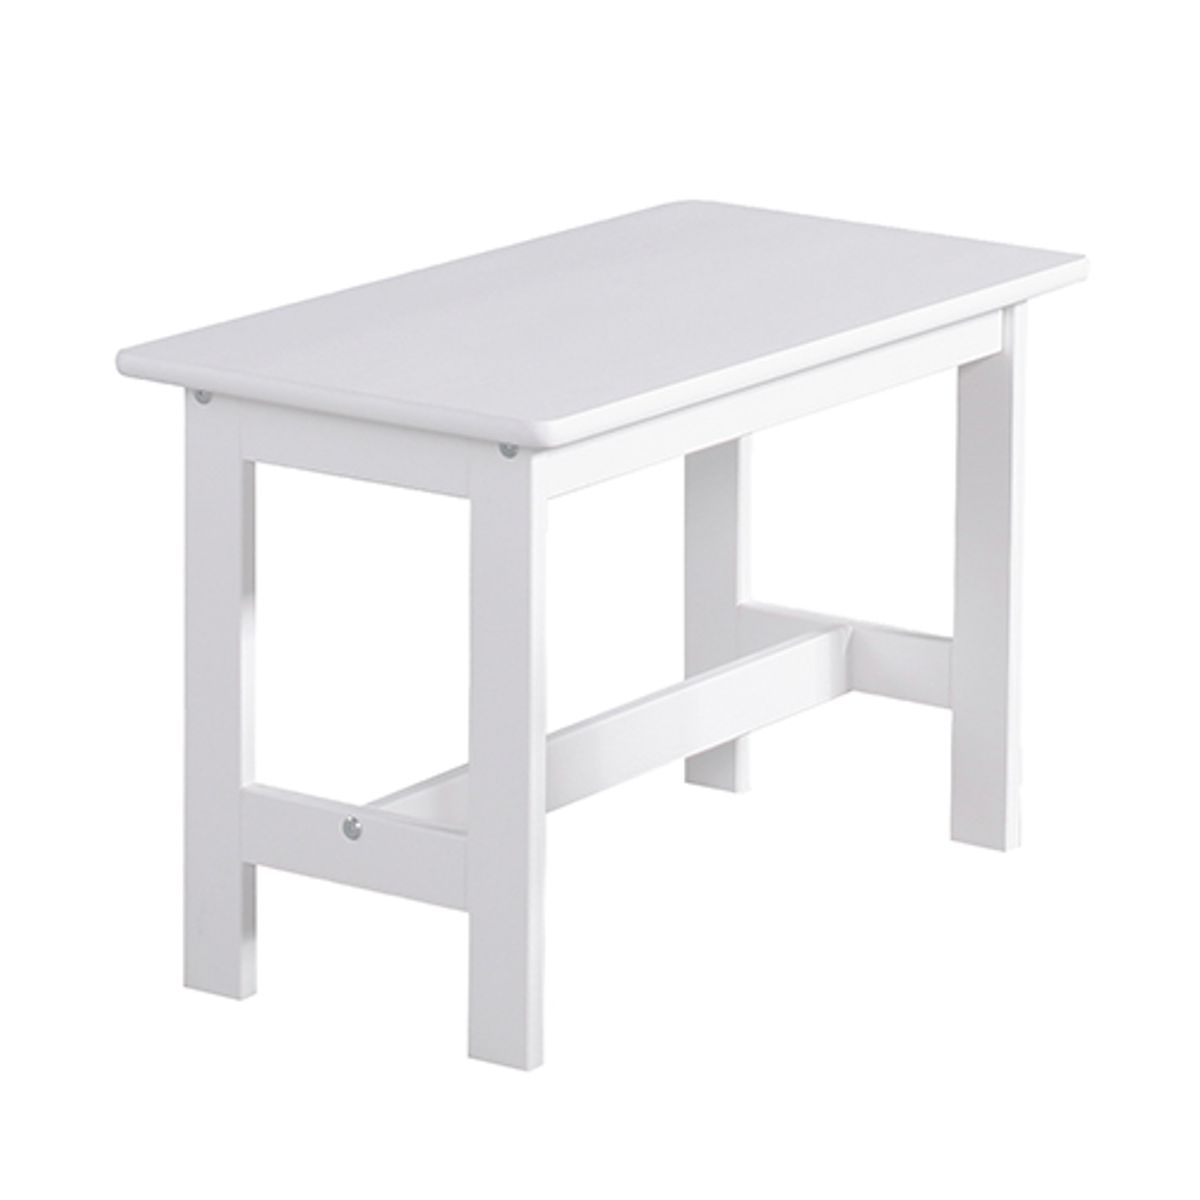 table enfant rectangulaire en bois blanc pinio decoclico. Black Bedroom Furniture Sets. Home Design Ideas